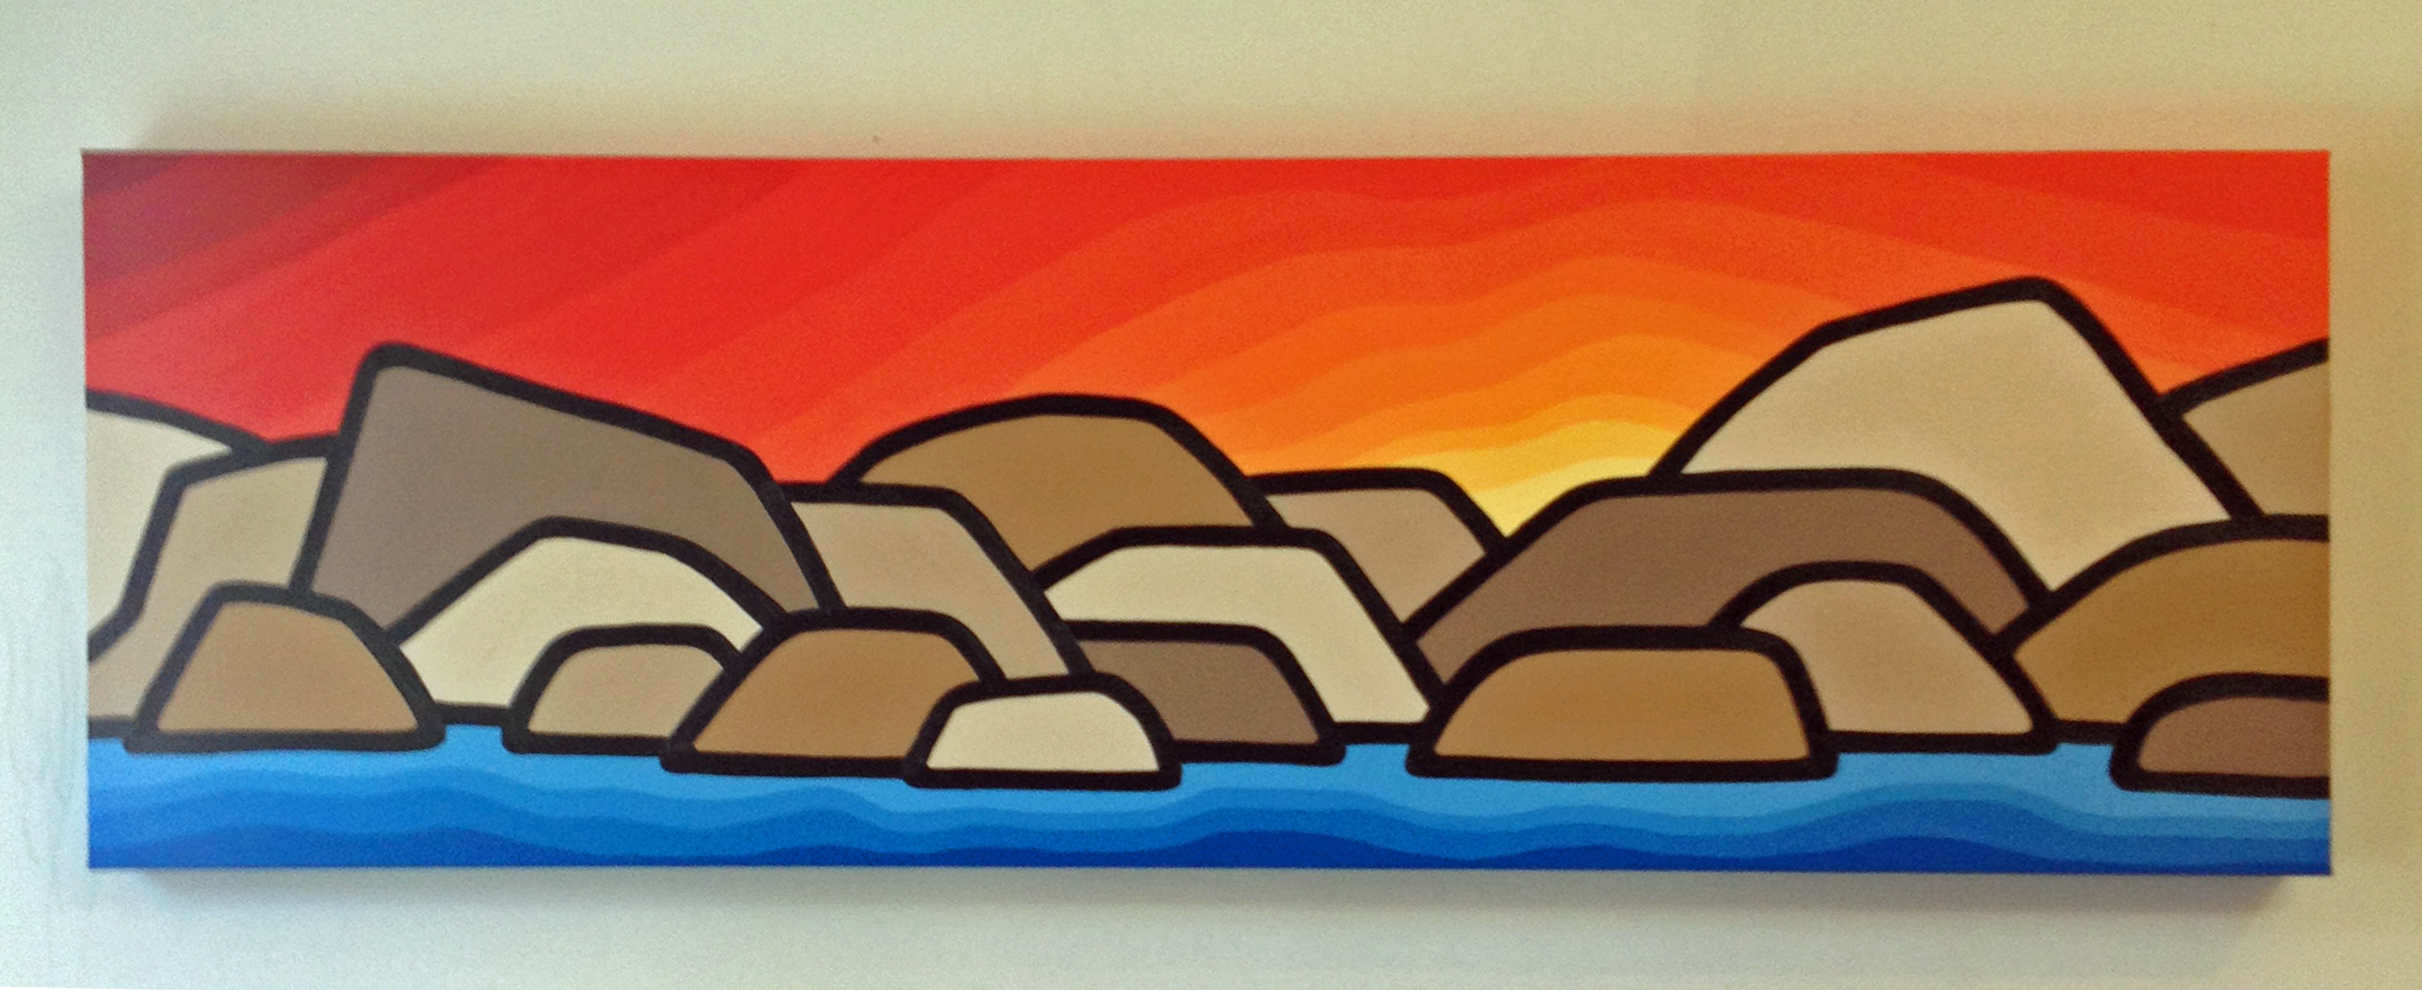 "Title: Along the River, 2014  Size: 12"" x 36"" acrylic on canvas  SOLD"